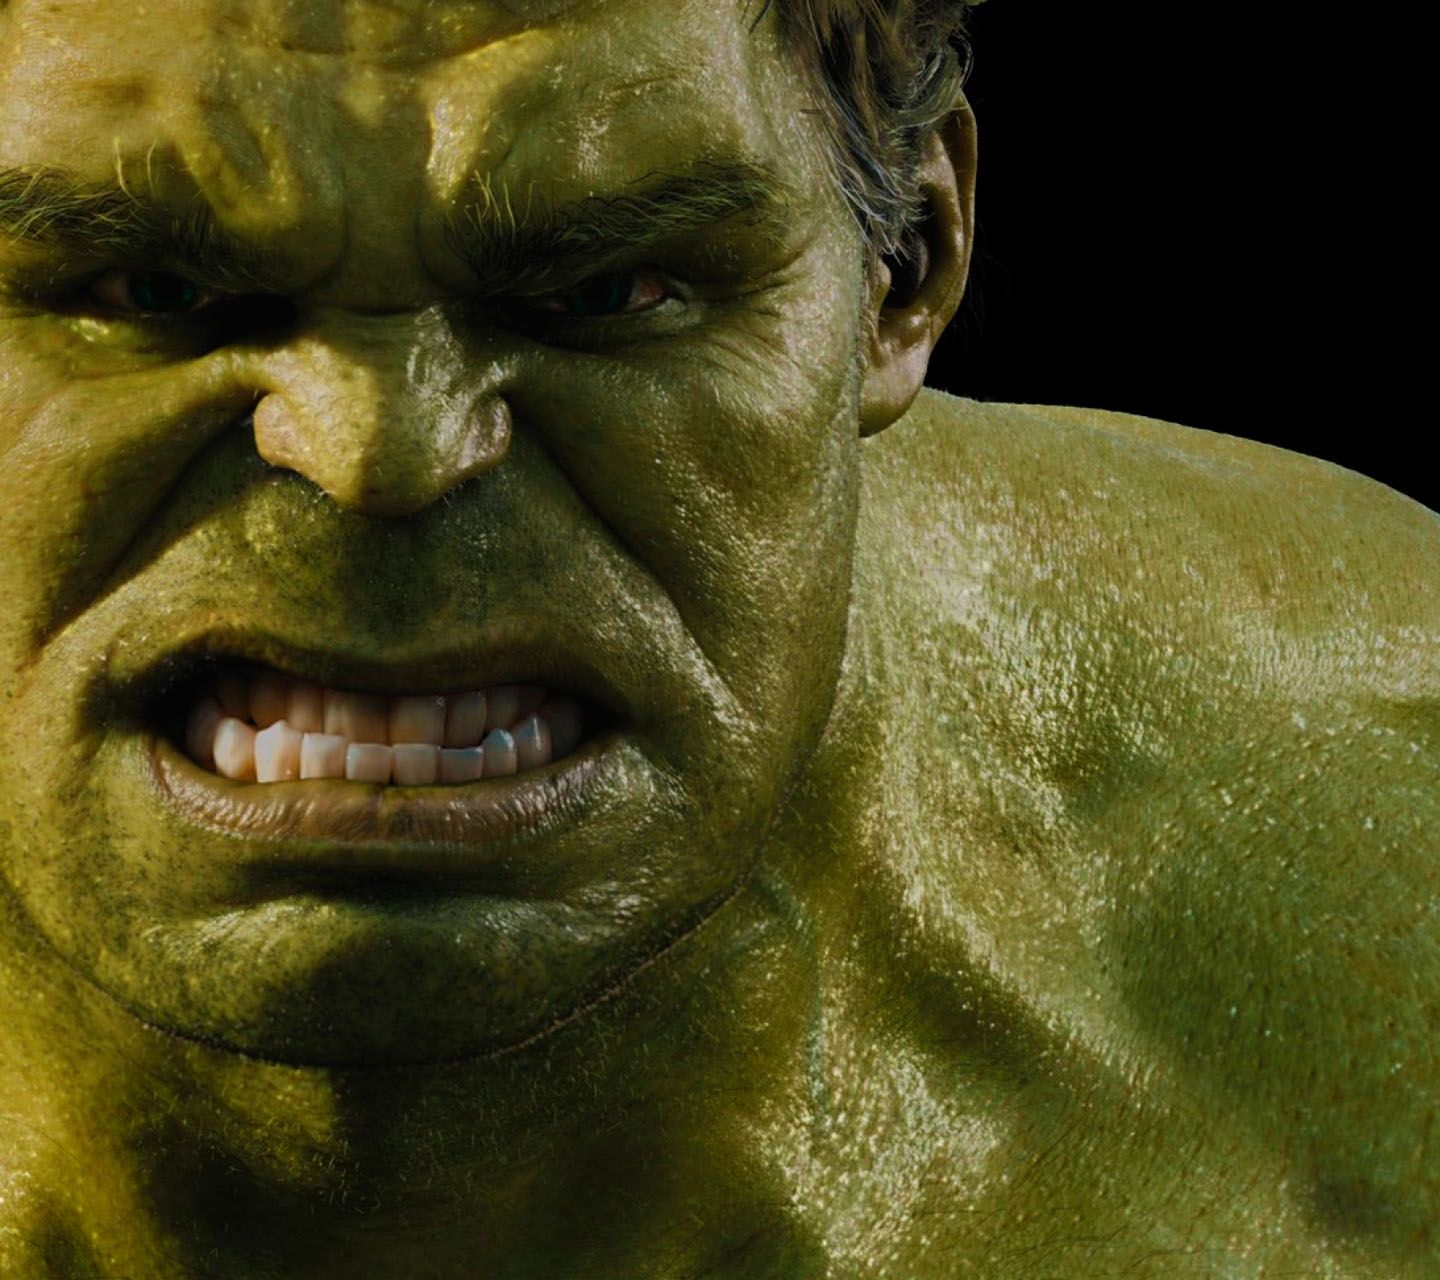 Hulk Wallpapers HD 3D bestscreenwallpaper com Real Hulk jpg  1440     Hulk Wallpapers HD 3D bestscreenwallpaper com Real Hulk jpg  1440    1280